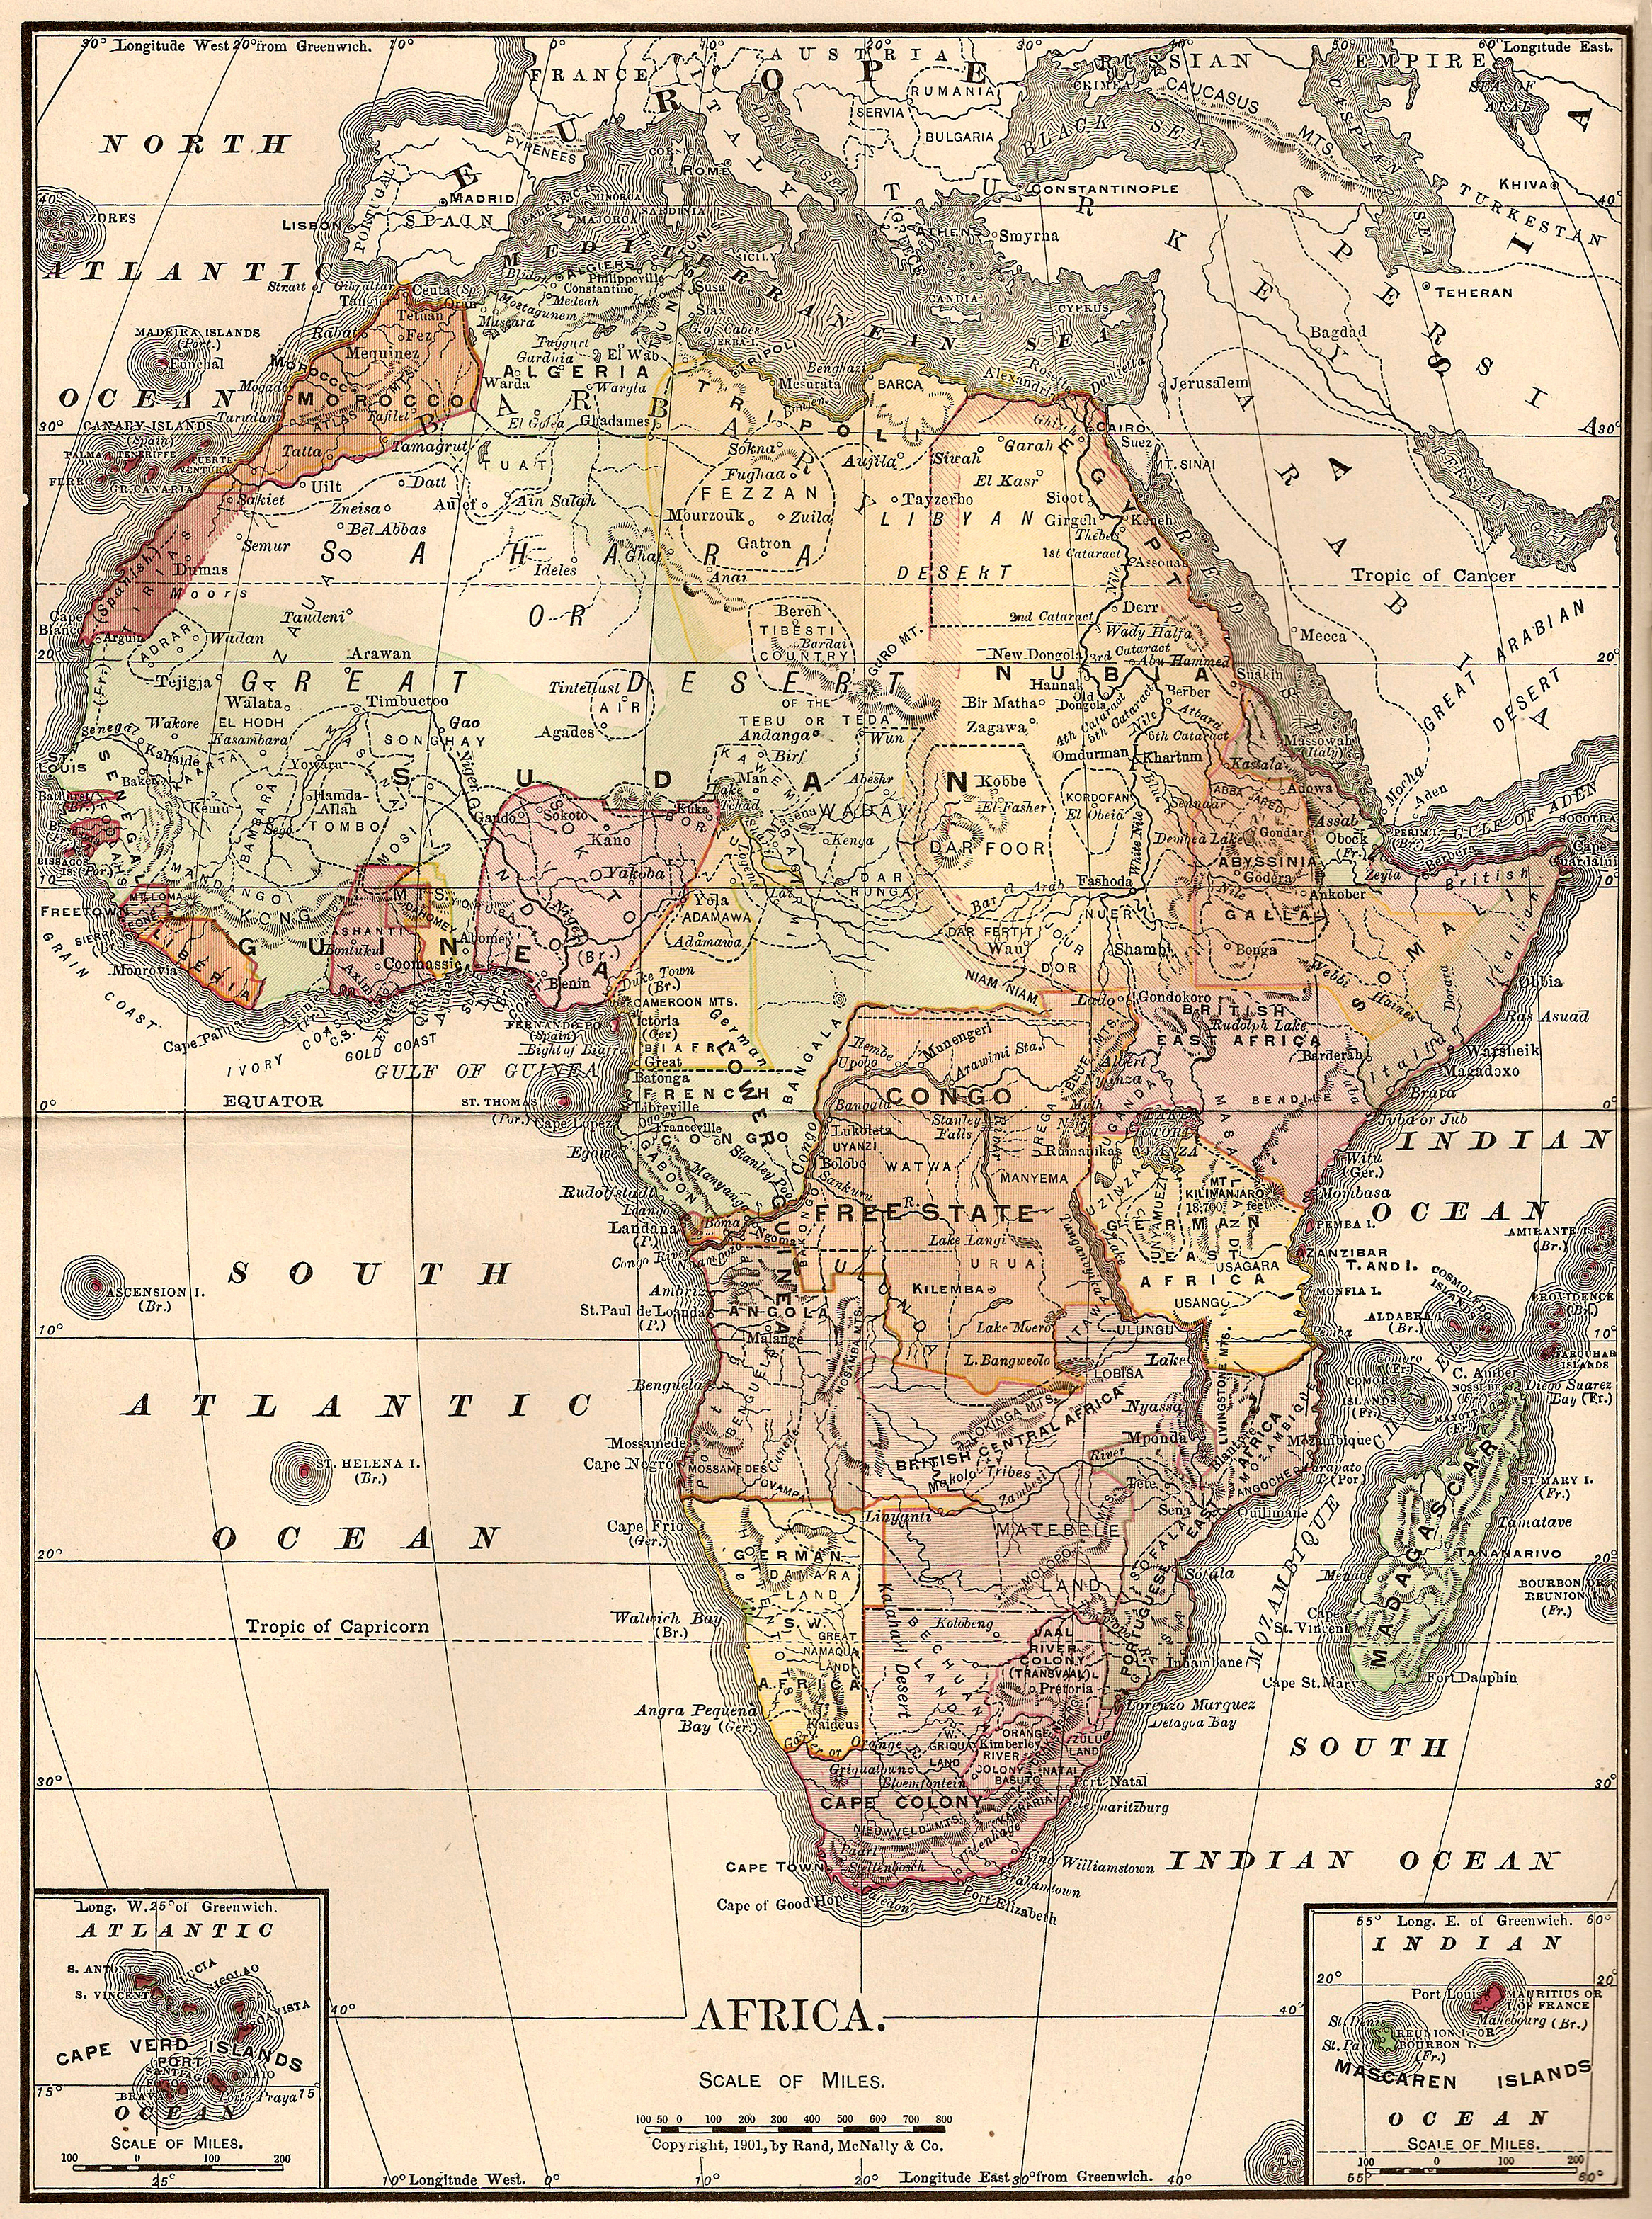 Catnipstudiocollage free vintage clip art map of africa 1901 catnipstudiocollage free vintage clip art map of africa 1901 gumiabroncs Images